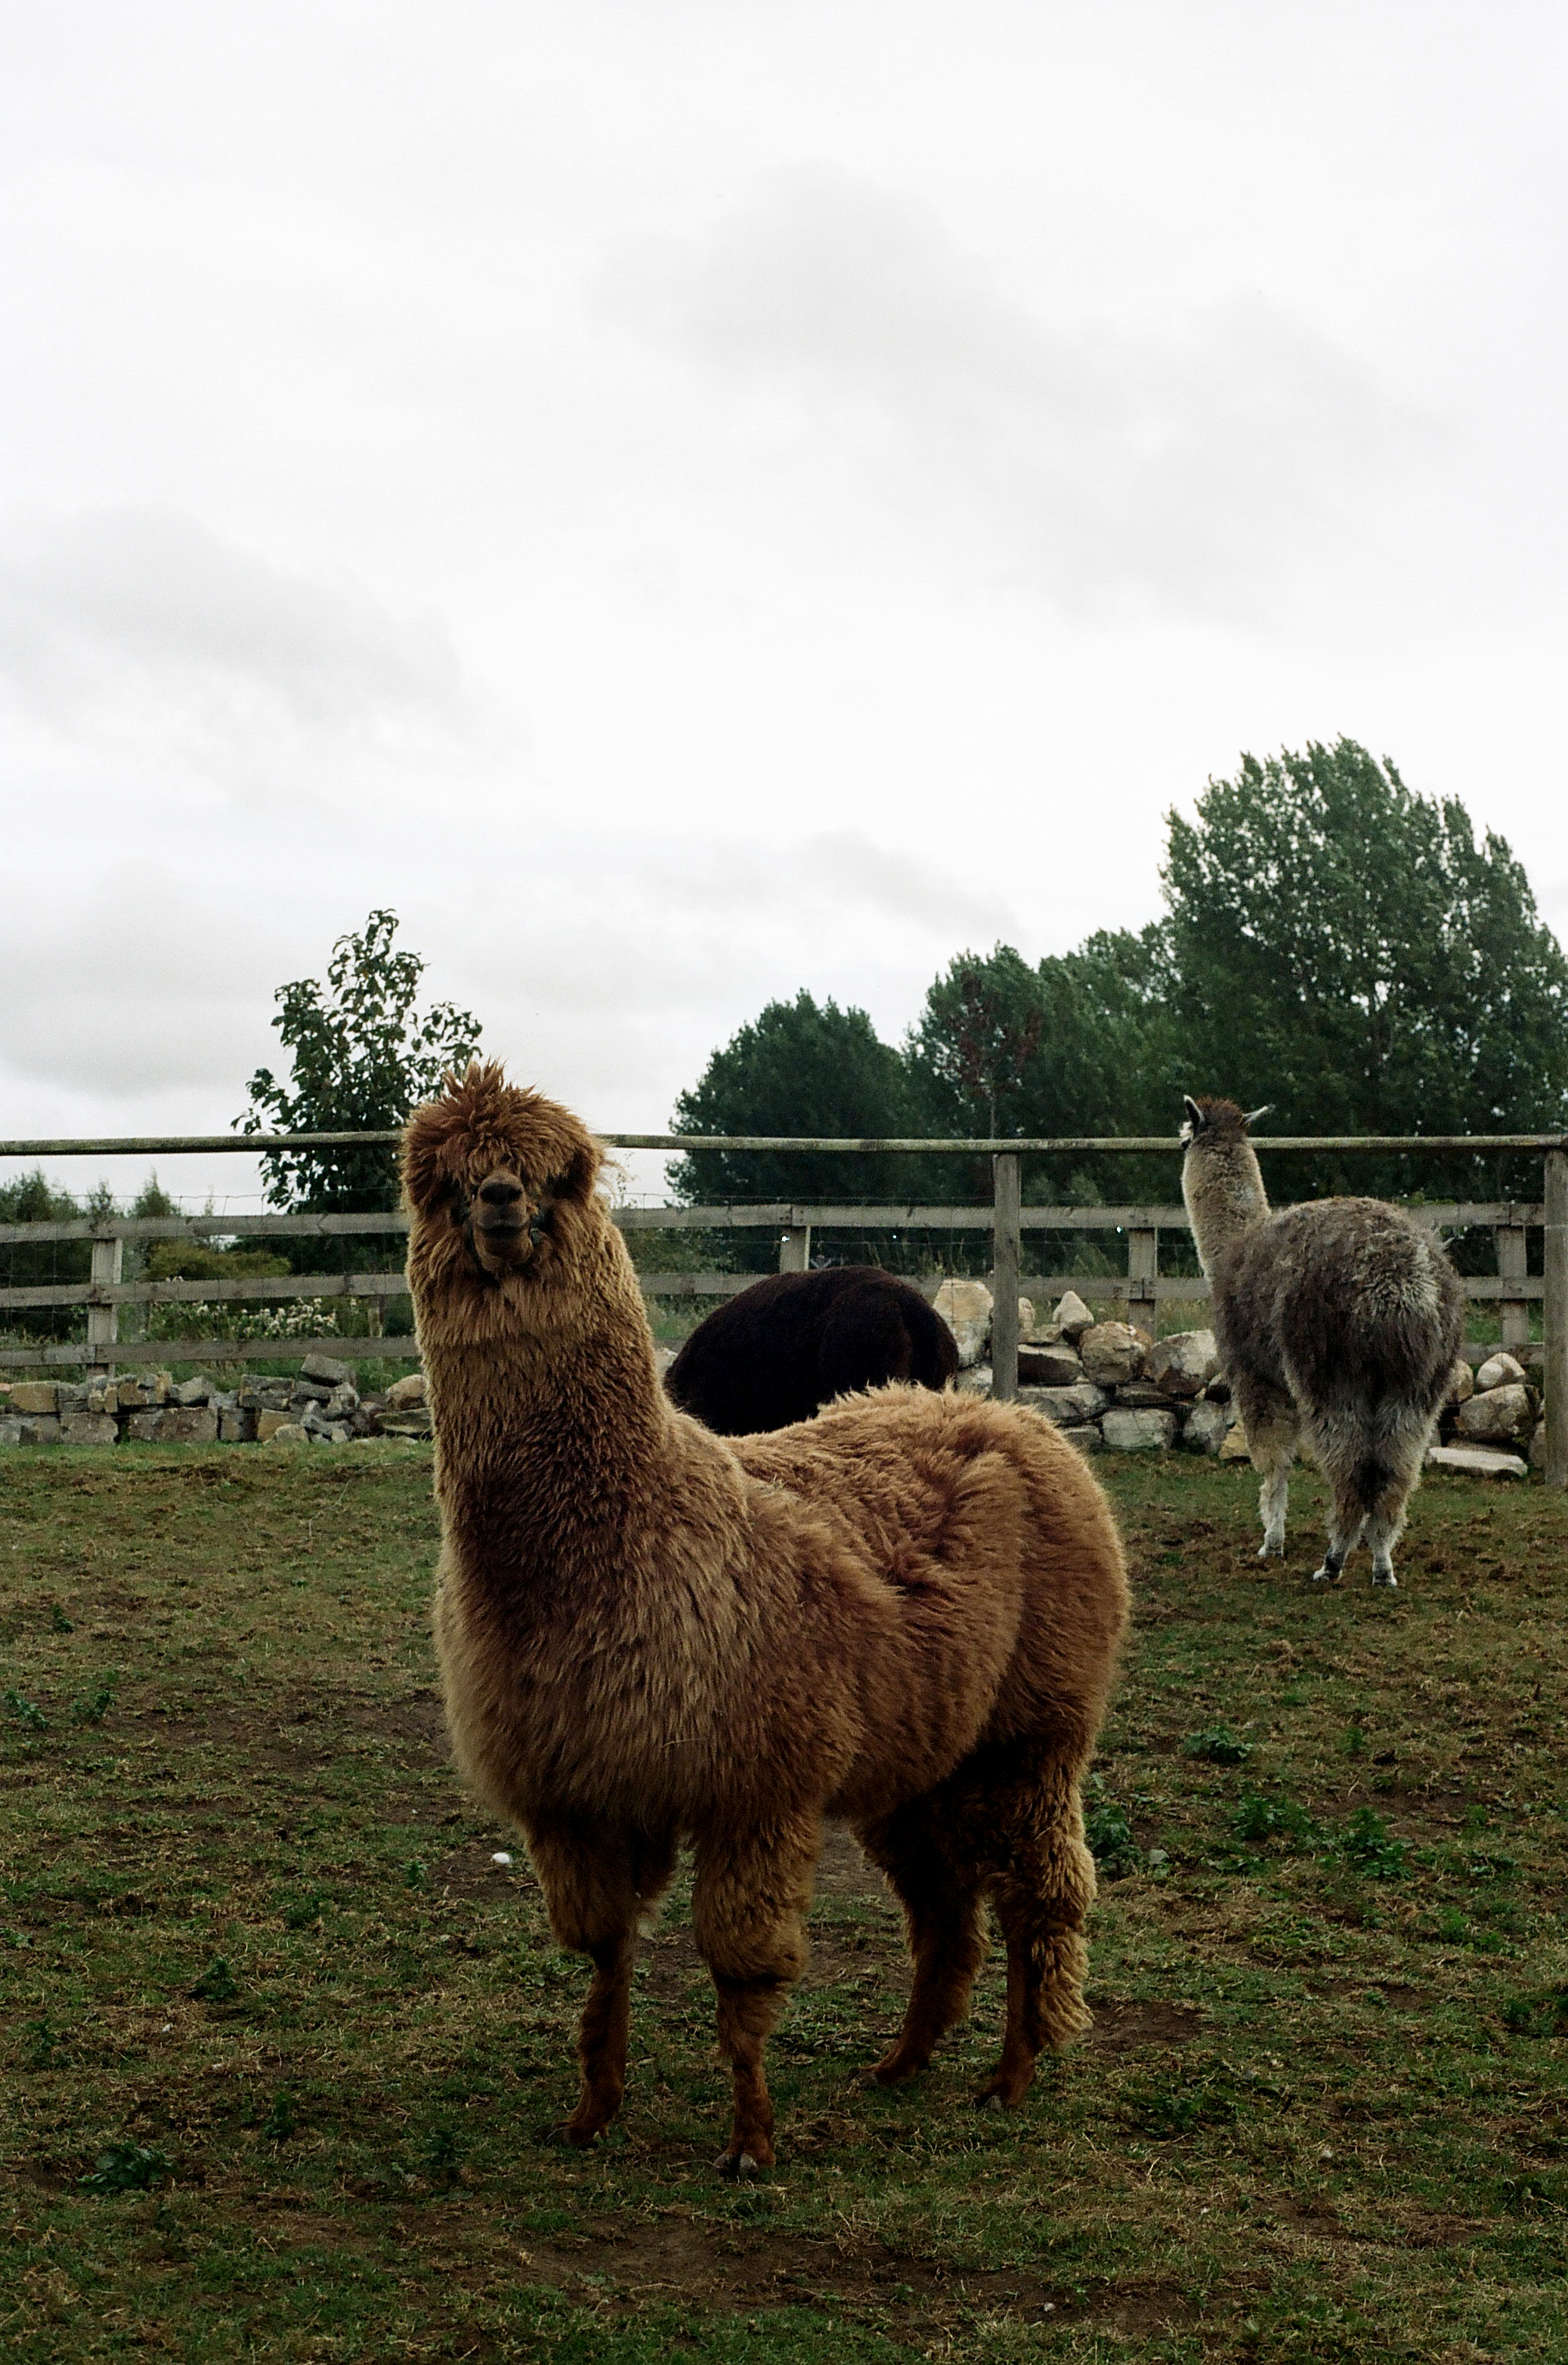 Vincent, the Alpaca